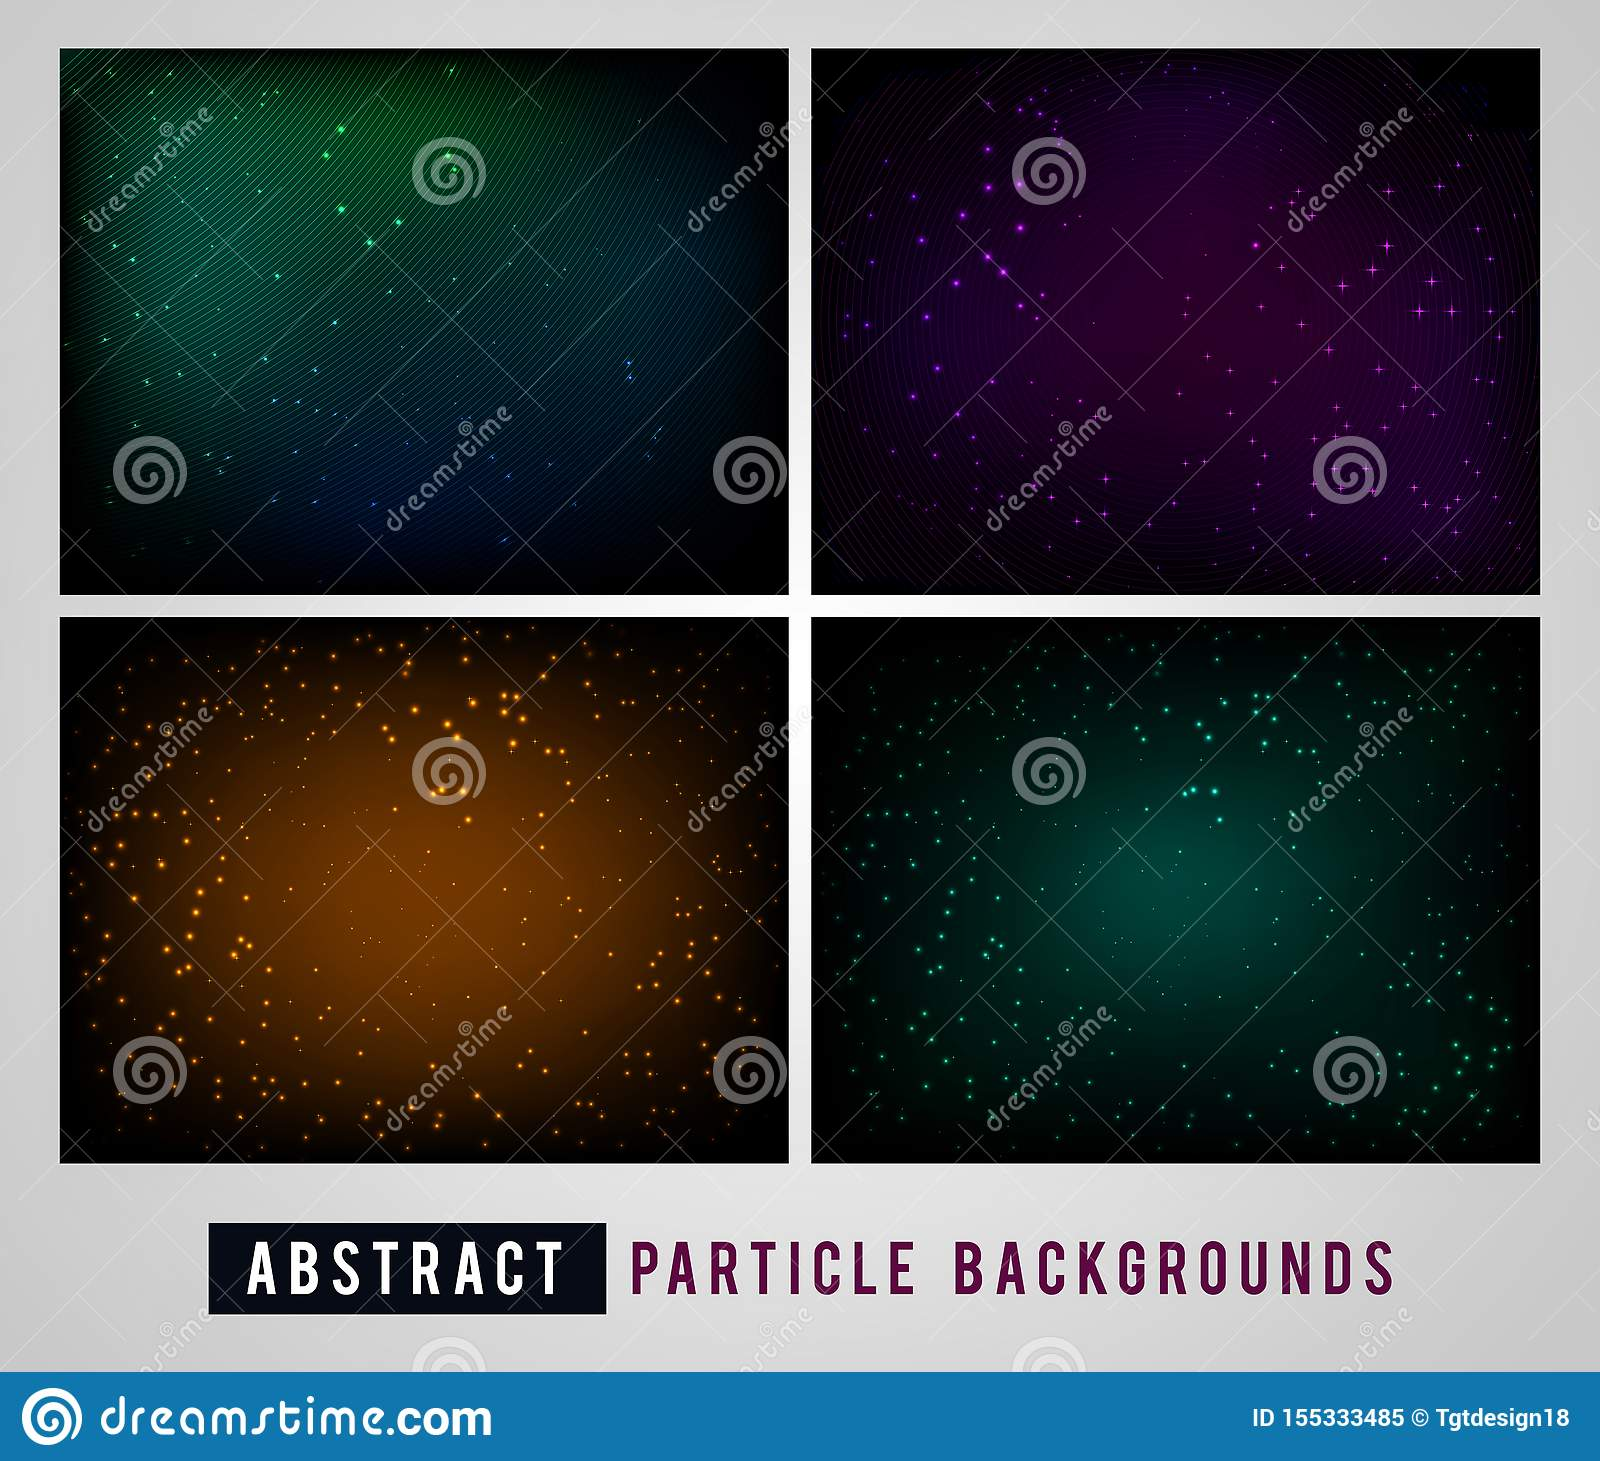 Abstract Particle Backgrounds Pack With Soft Gradient